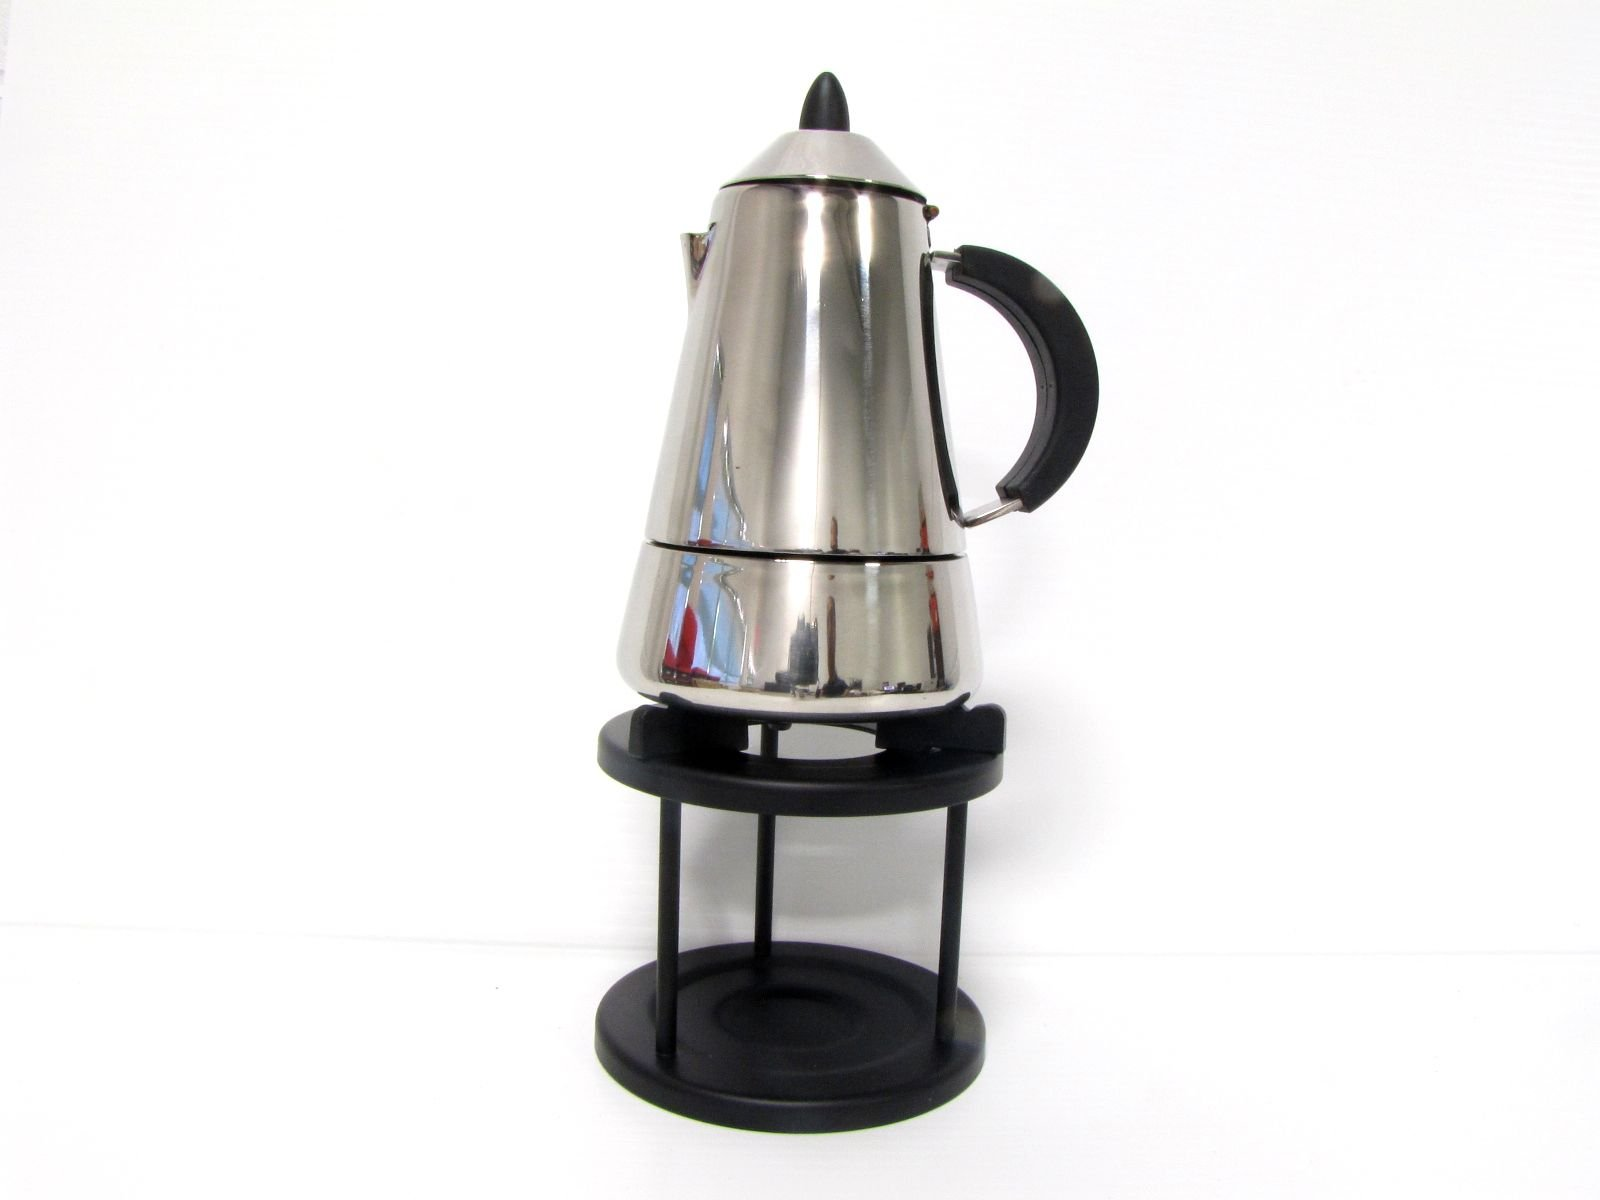 Pyramid 6cup Espresso maker (10oz, 300ml) Stainless steel with warmer stand